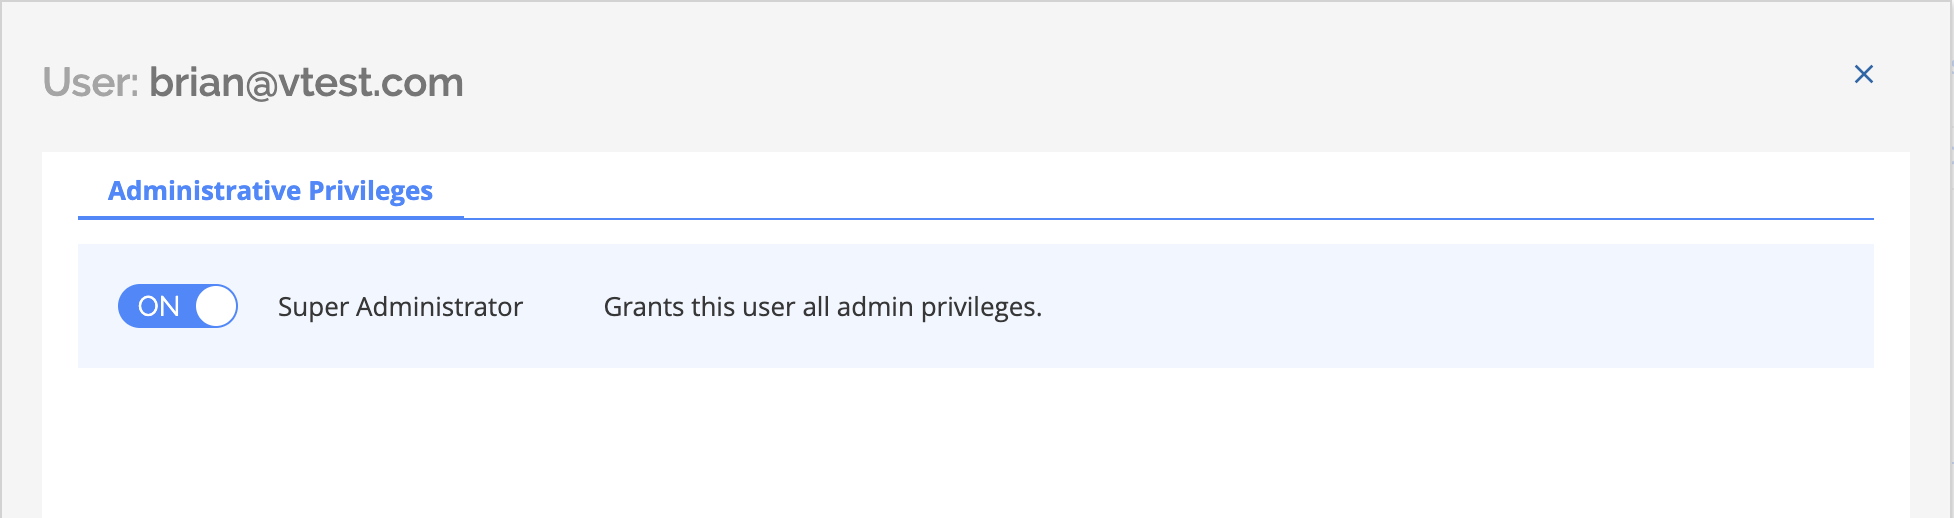 Administrative privileges toggle on